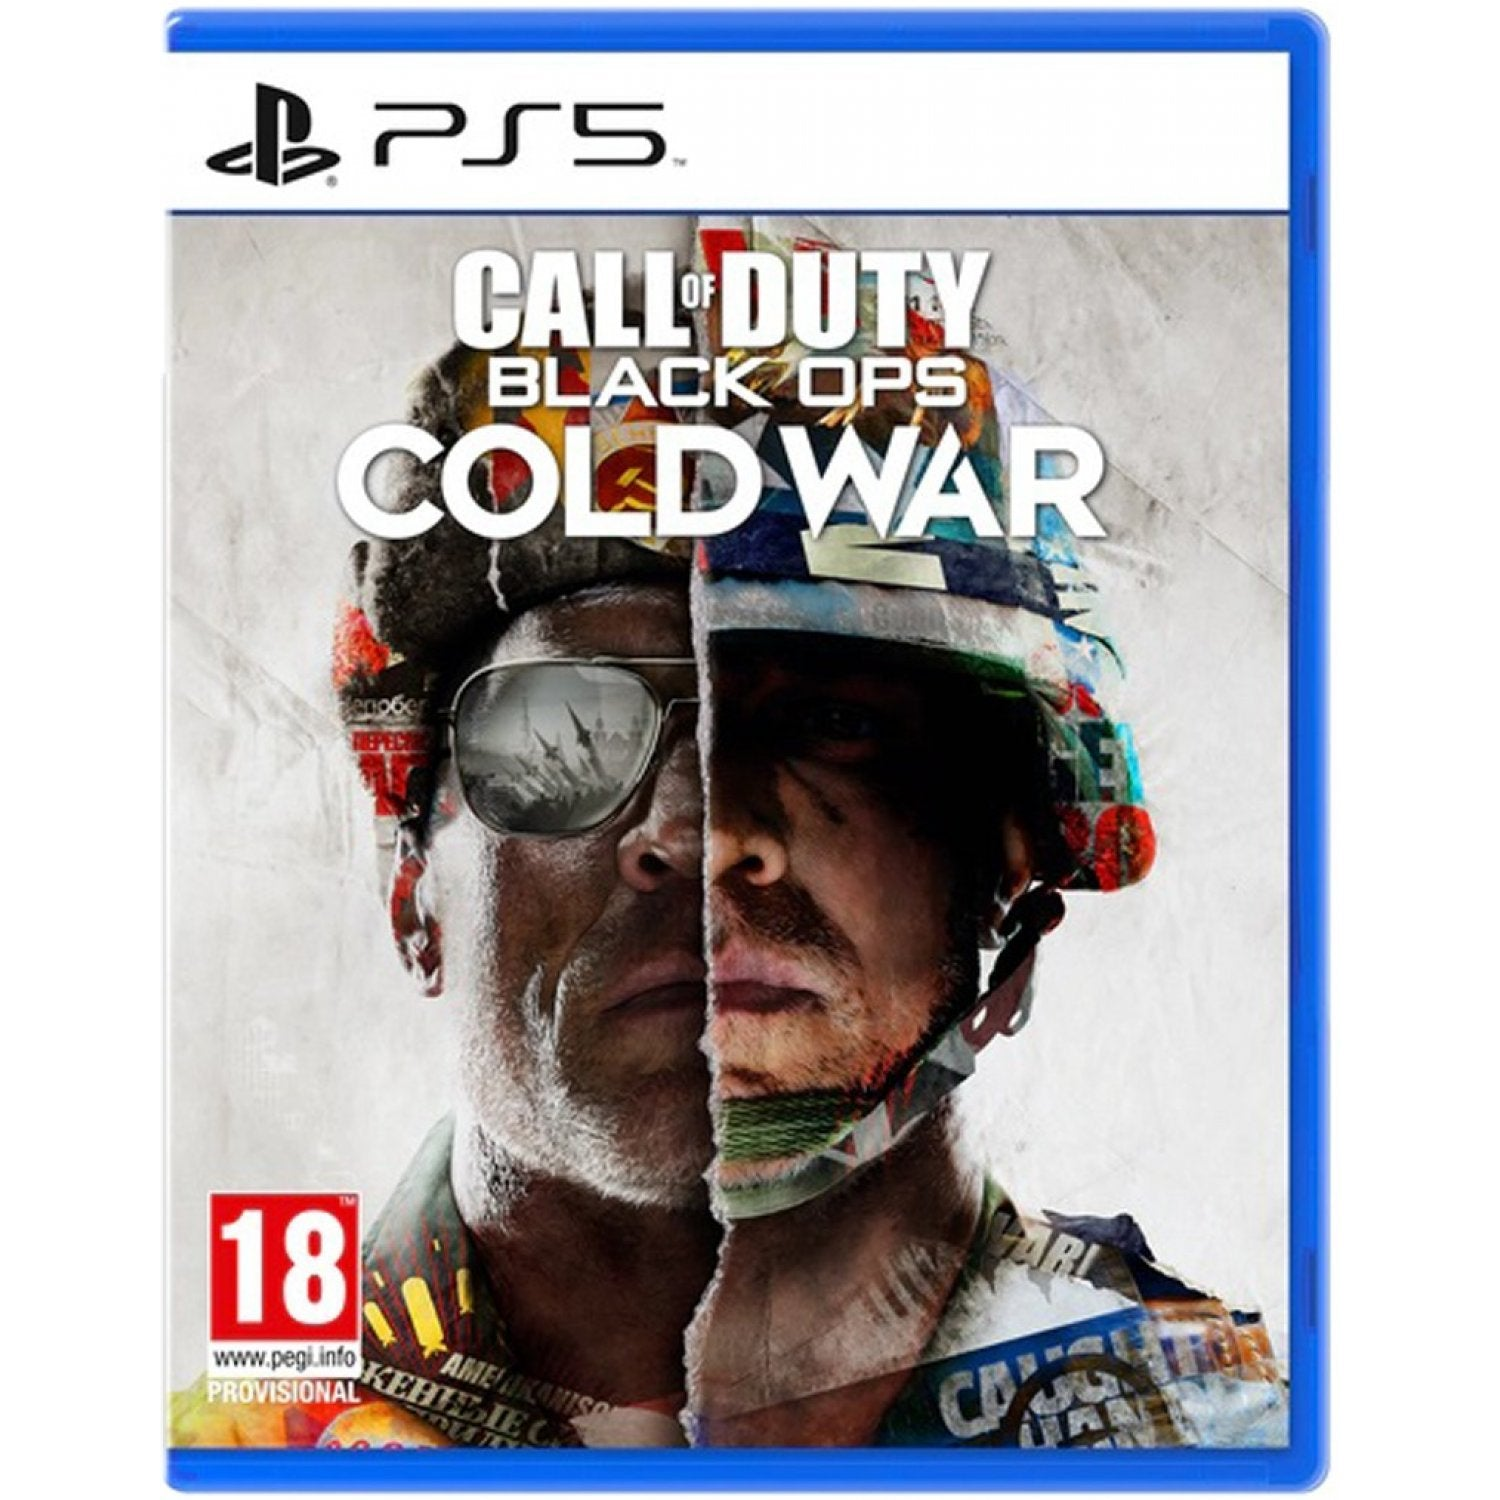 PS5 Call of Duty: Black Ops Cold War